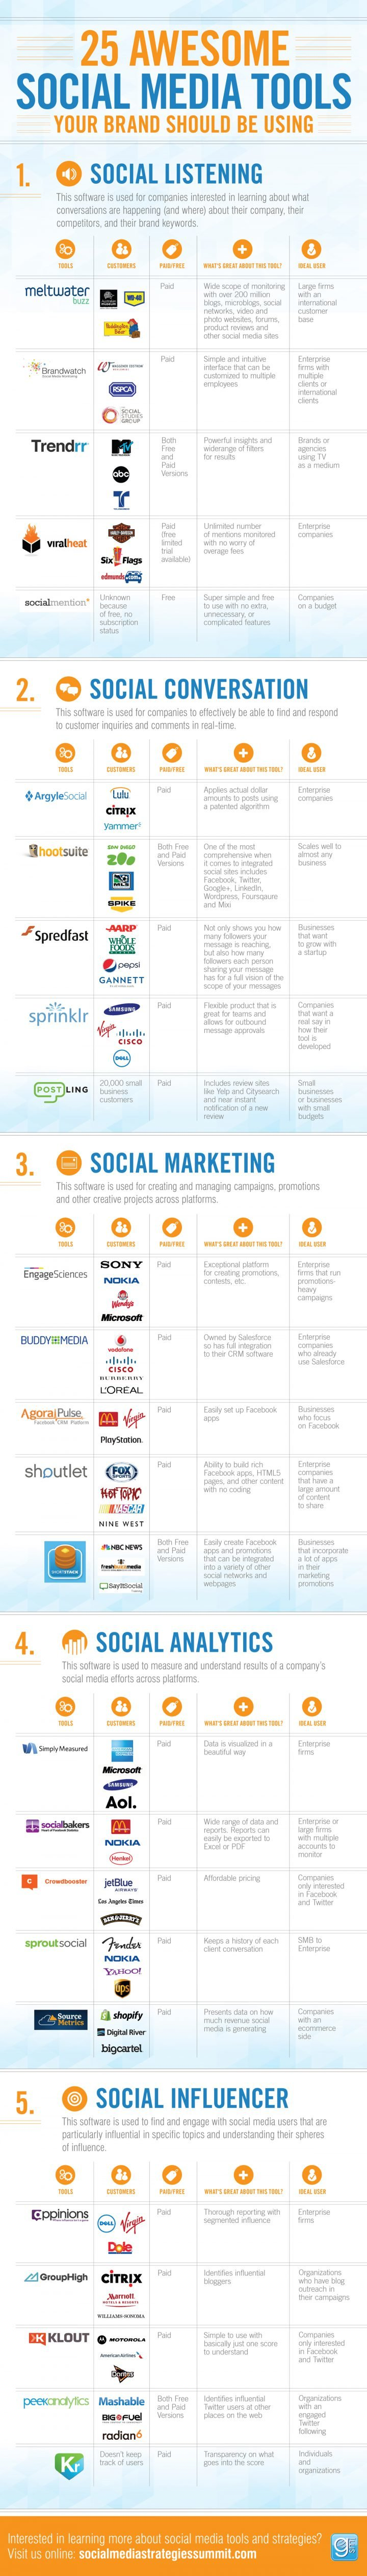 Tools for #Social_Media #SMM #Marketing #Infographic